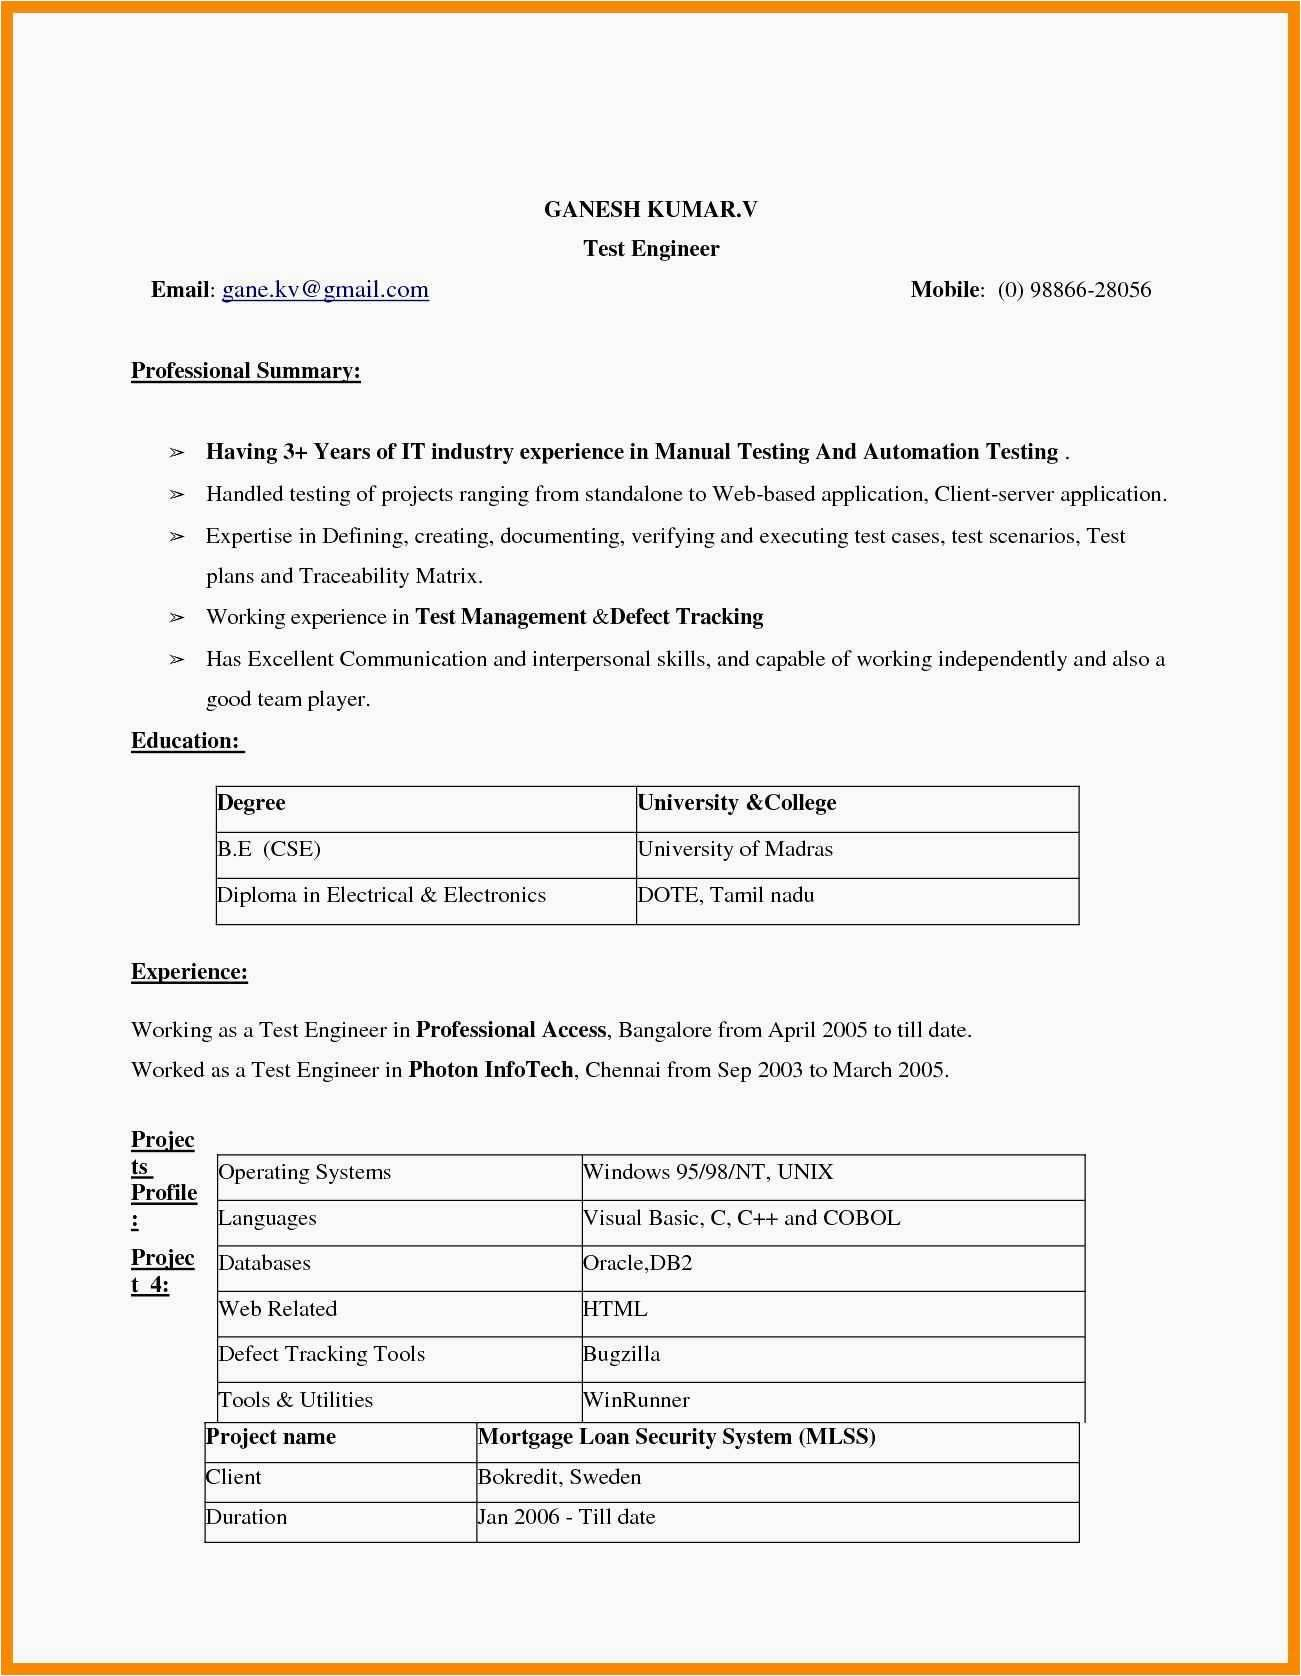 resume templates word 2007 example-How to Make A Resume Word 2007 Refrence Resume Templates Word 2007 2018 Bsw Resume 12-p